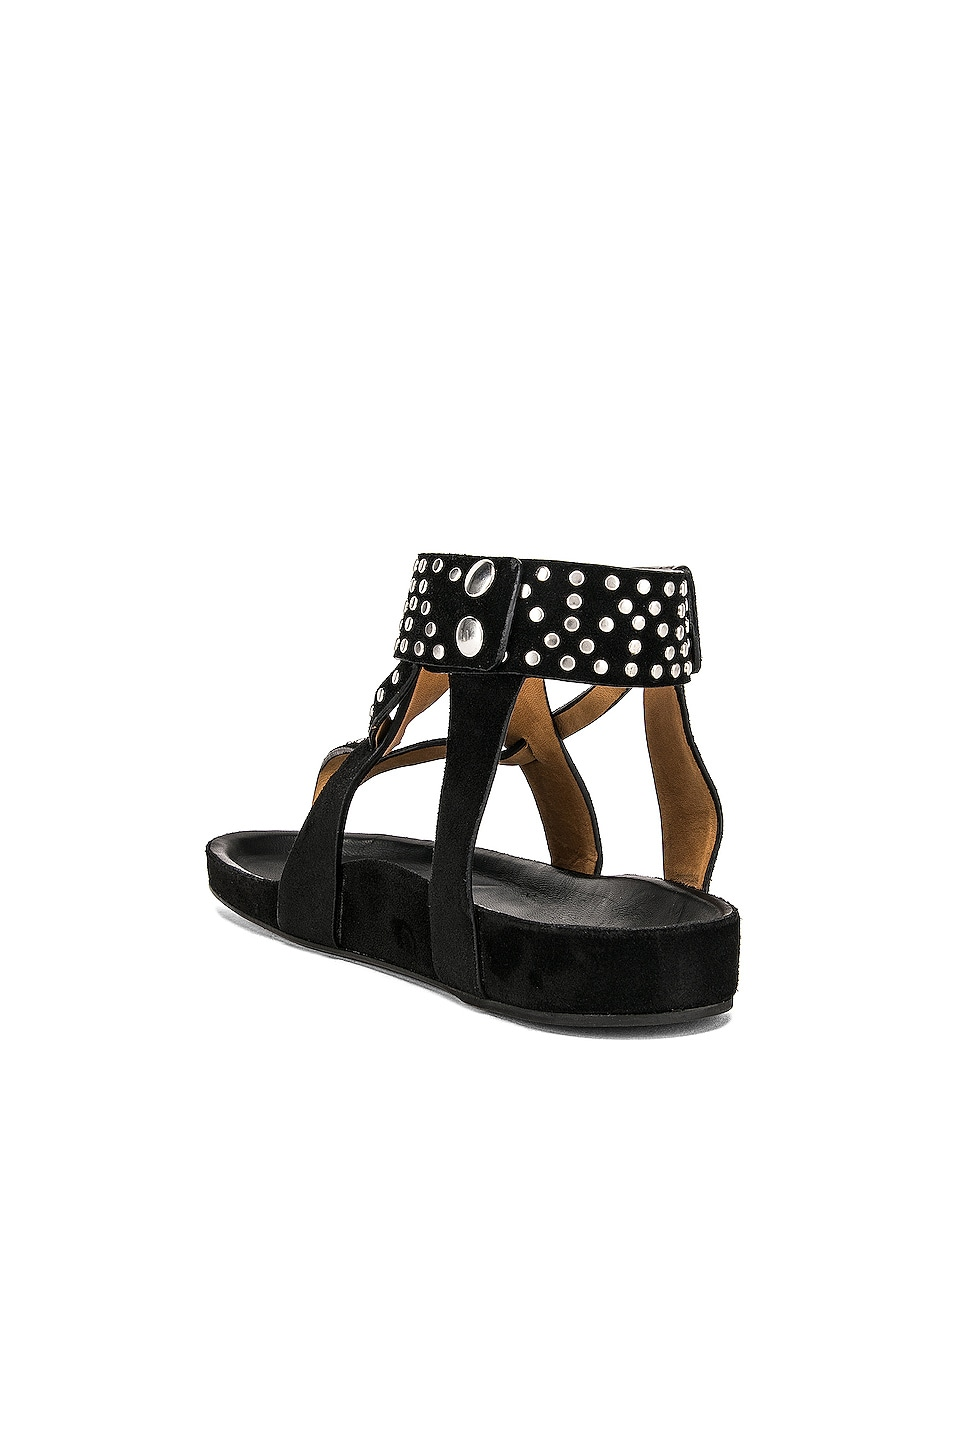 Image 3 of Isabel Marant Ellan Sandal in Black